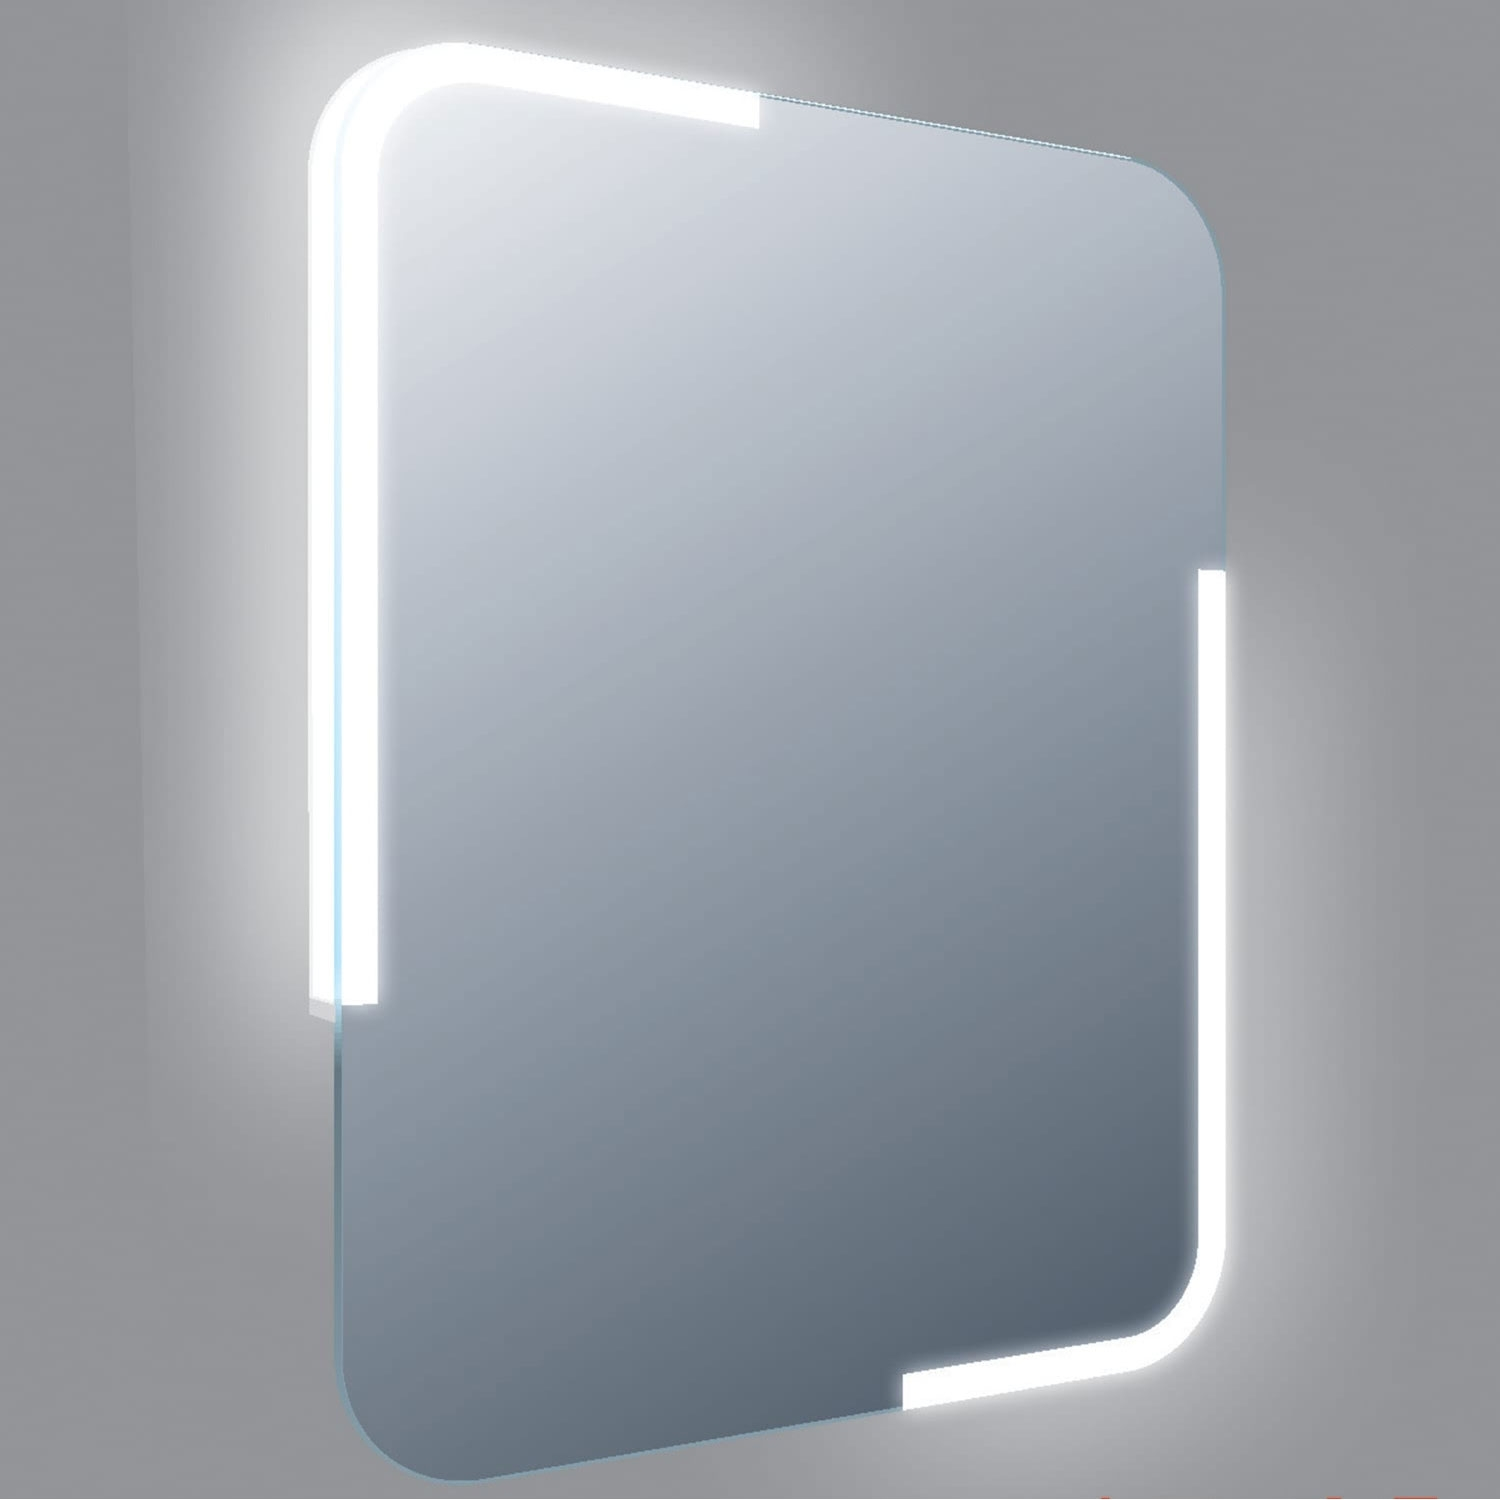 Verona Curve LED Bathroom Mirror with Touch Sensor and Demister 800mm H x 600mm W